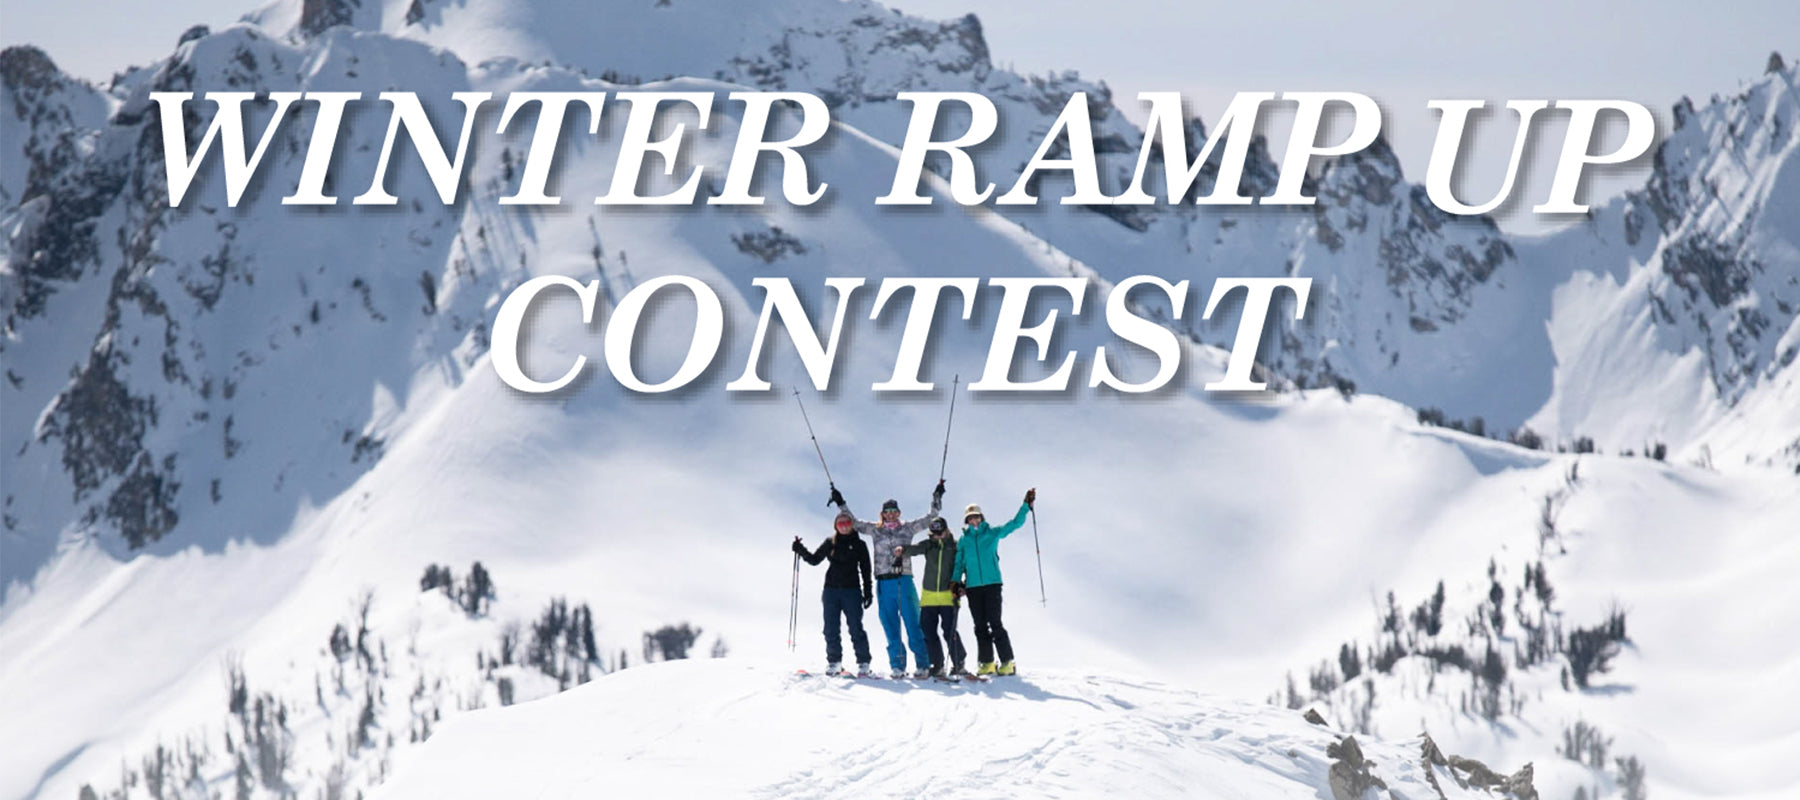 GIVEAWAY ALERT: Ramp Up for Winter!